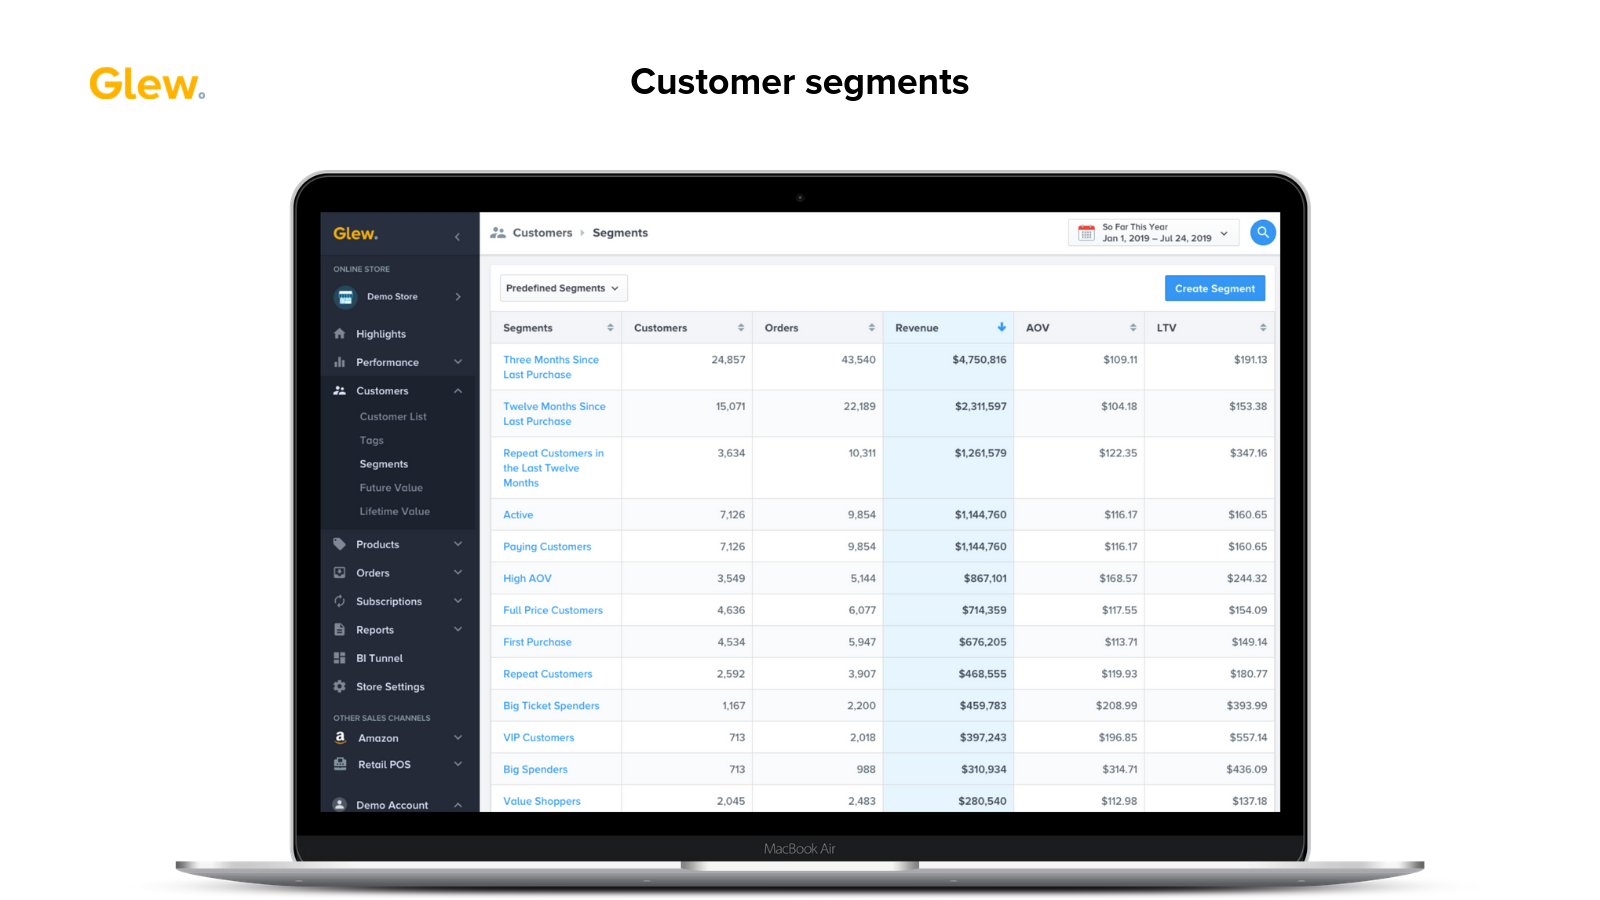 Customer segments in Glew, showing a list of available segments